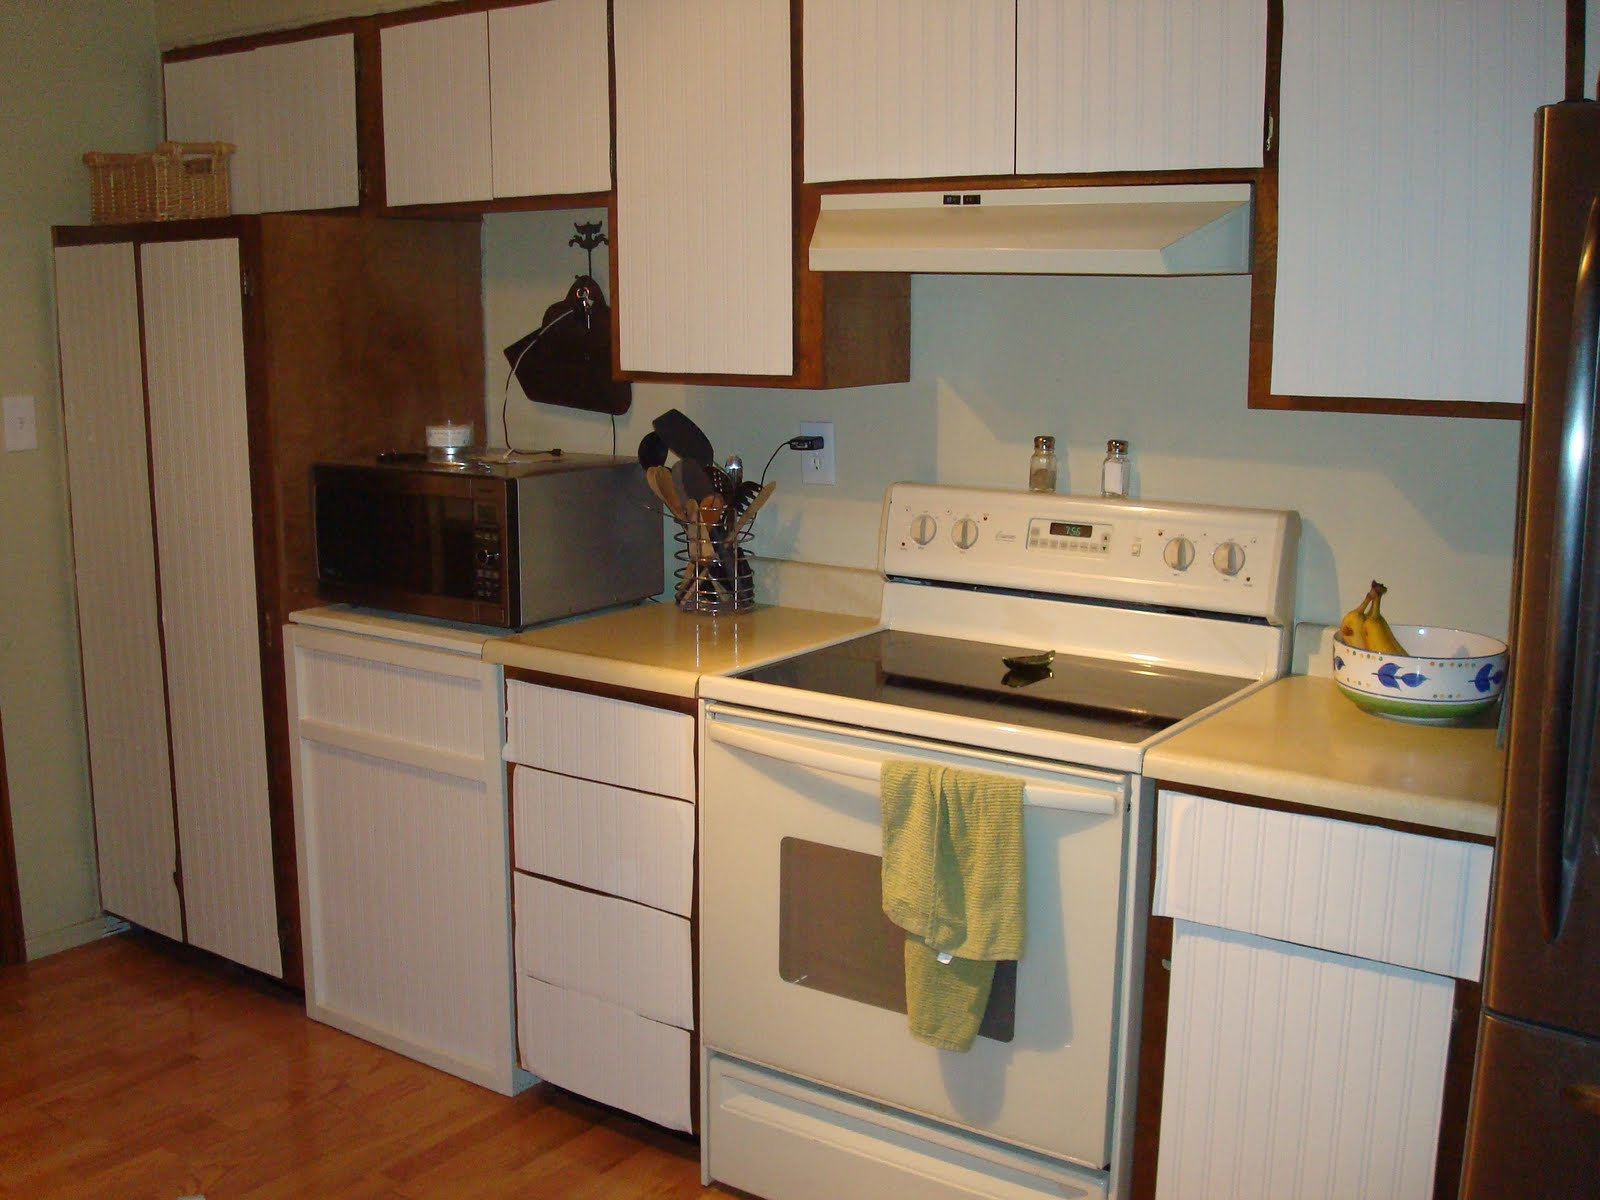 Just me low budget kitchen remodel for Low budget kitchen ideas